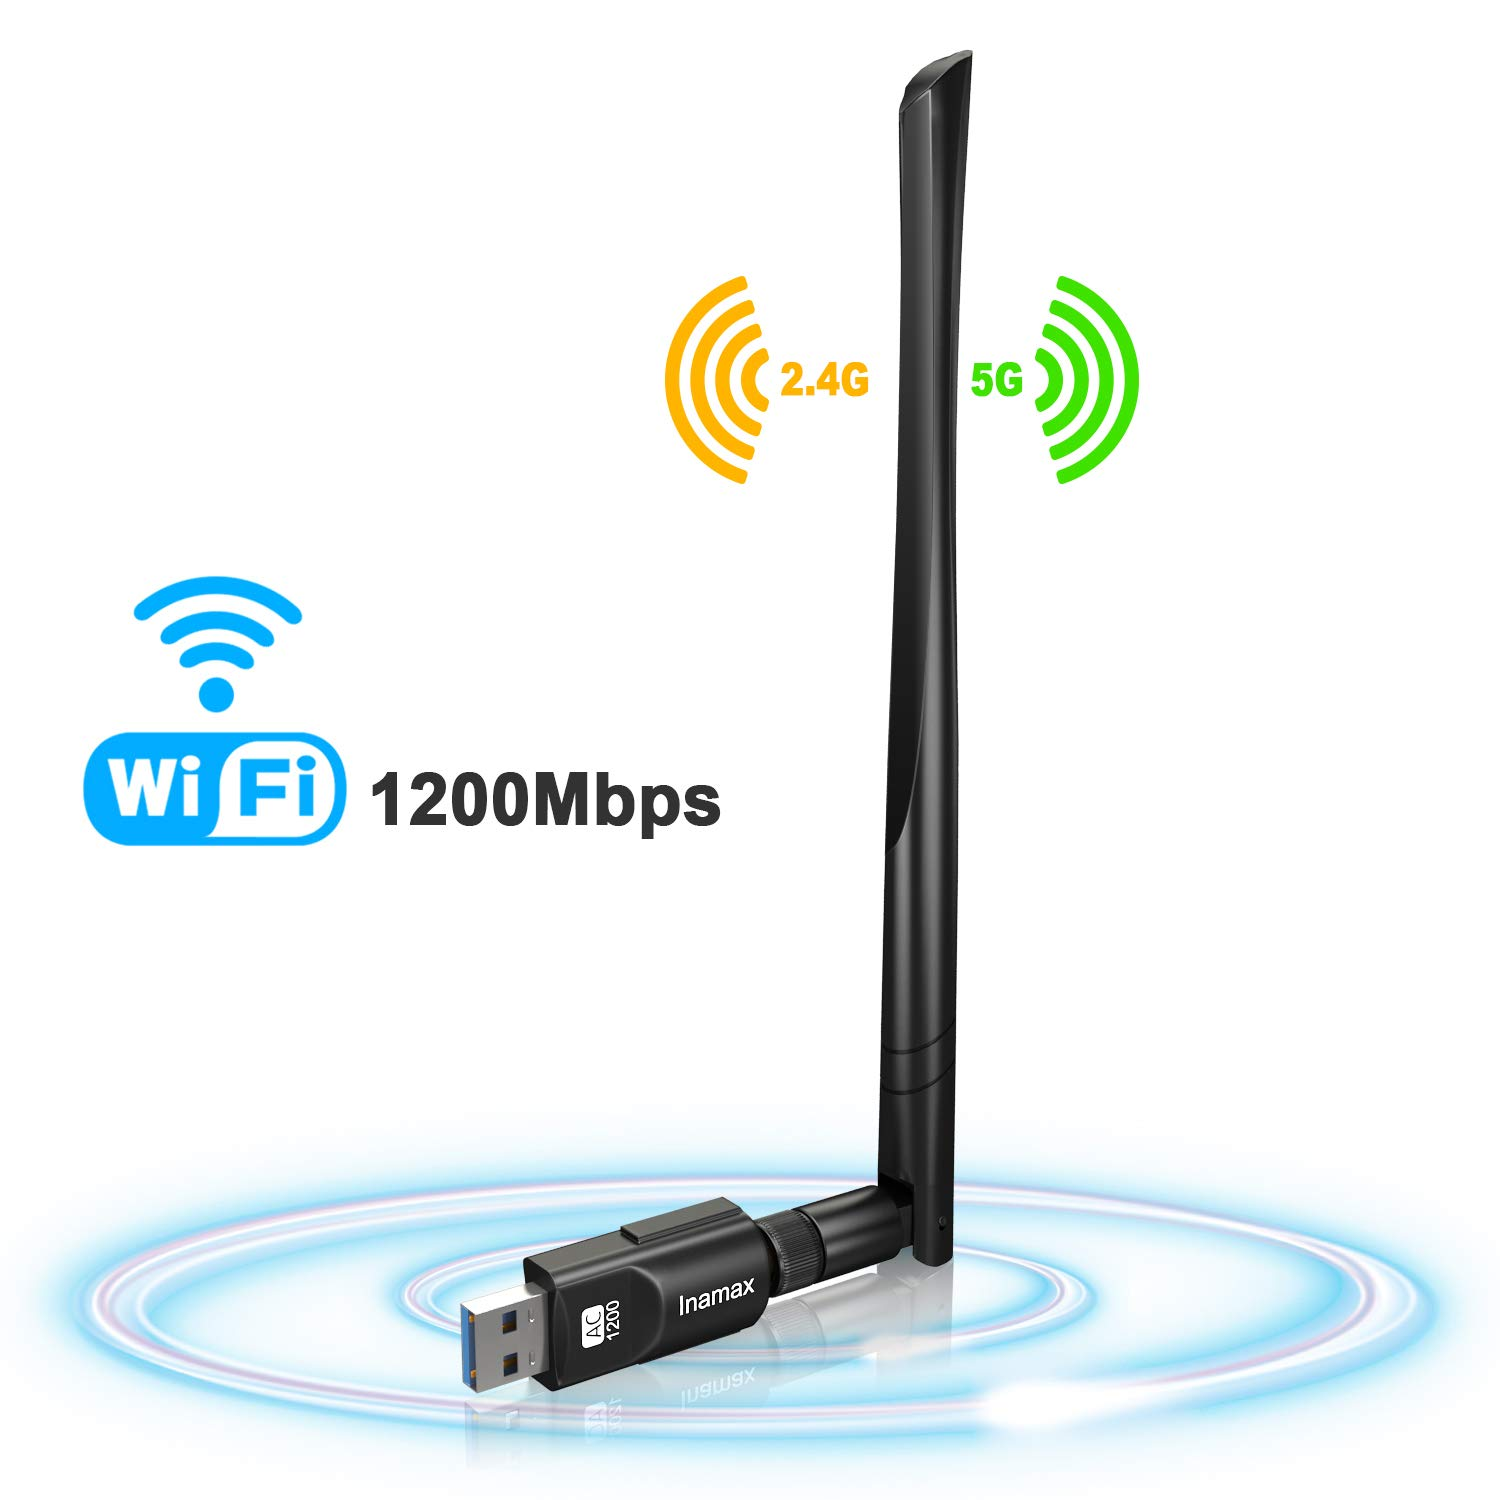 USB WiFi Adapter 1200Mbps, USB 3.0 Wireless Network WiFi Dongle with 5dBi Antenna for Desktop Laptop PC Mac,Dual Band 2.4G/5G 802.11ac,Support Windows 10/8/8.1/7/Vista/XP,MacOS 10.5-10.14 by Inamax